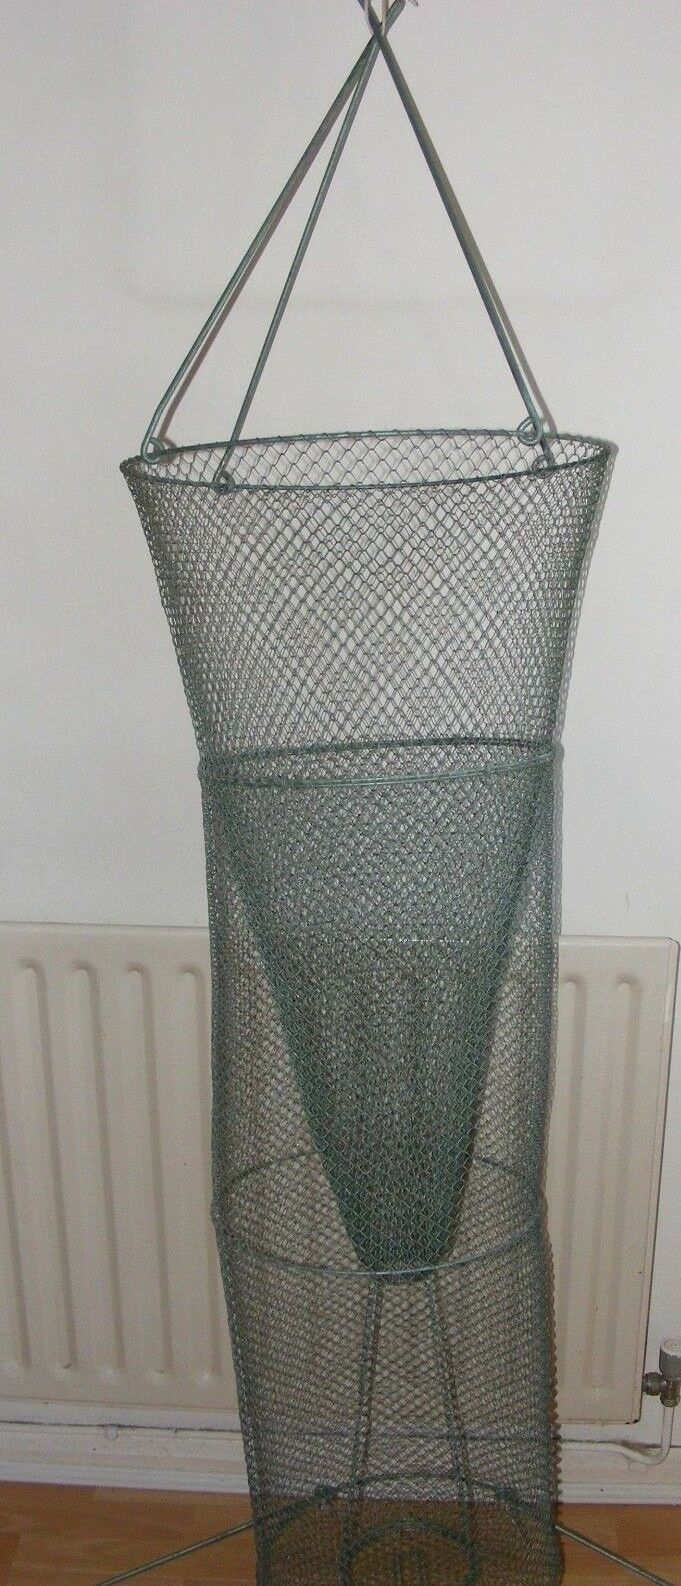 VINTAGE WIRE CRAB LOBSTER NET GREEN TO CONgreen LAMP    GARDEN   VEGETABLE BASKET  factory outlets